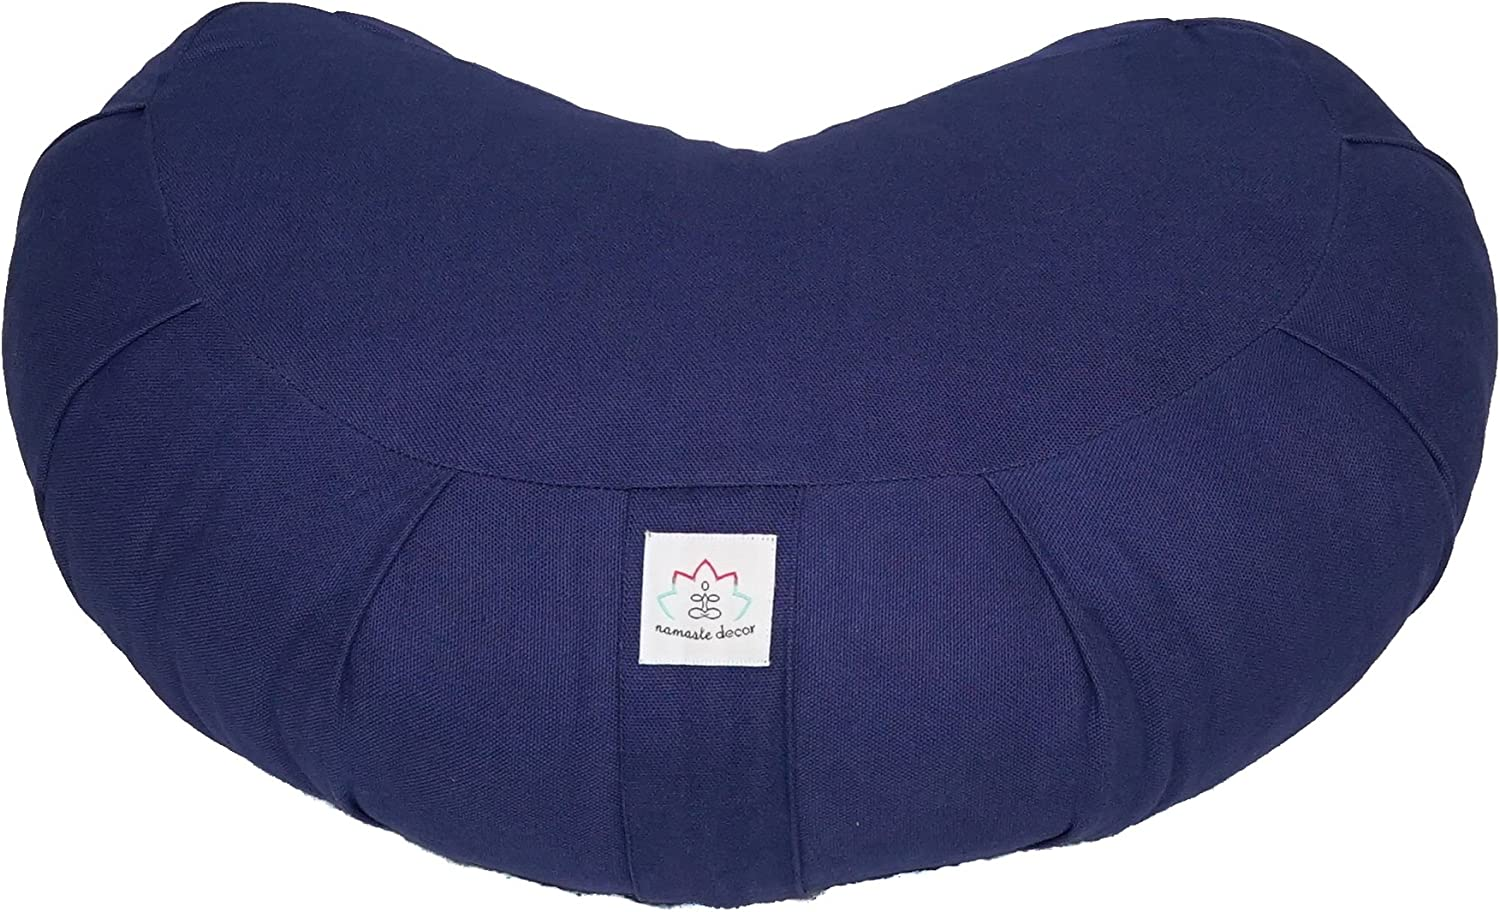 Cresent Cotton Zafu Meditation Cushion Navy bluee